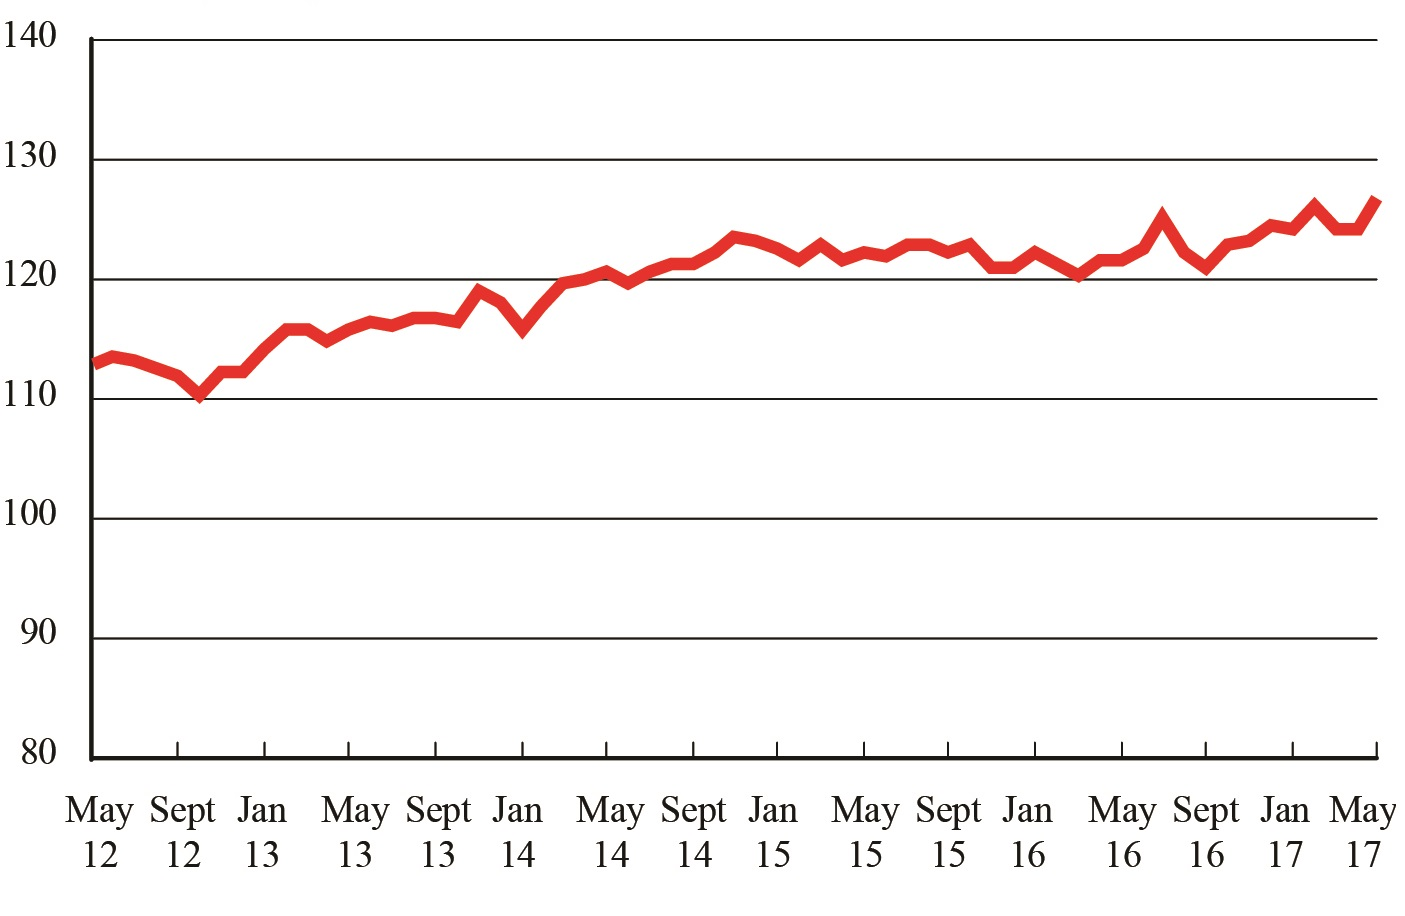 For-Hire Freight Rebounds, Hits New Record High